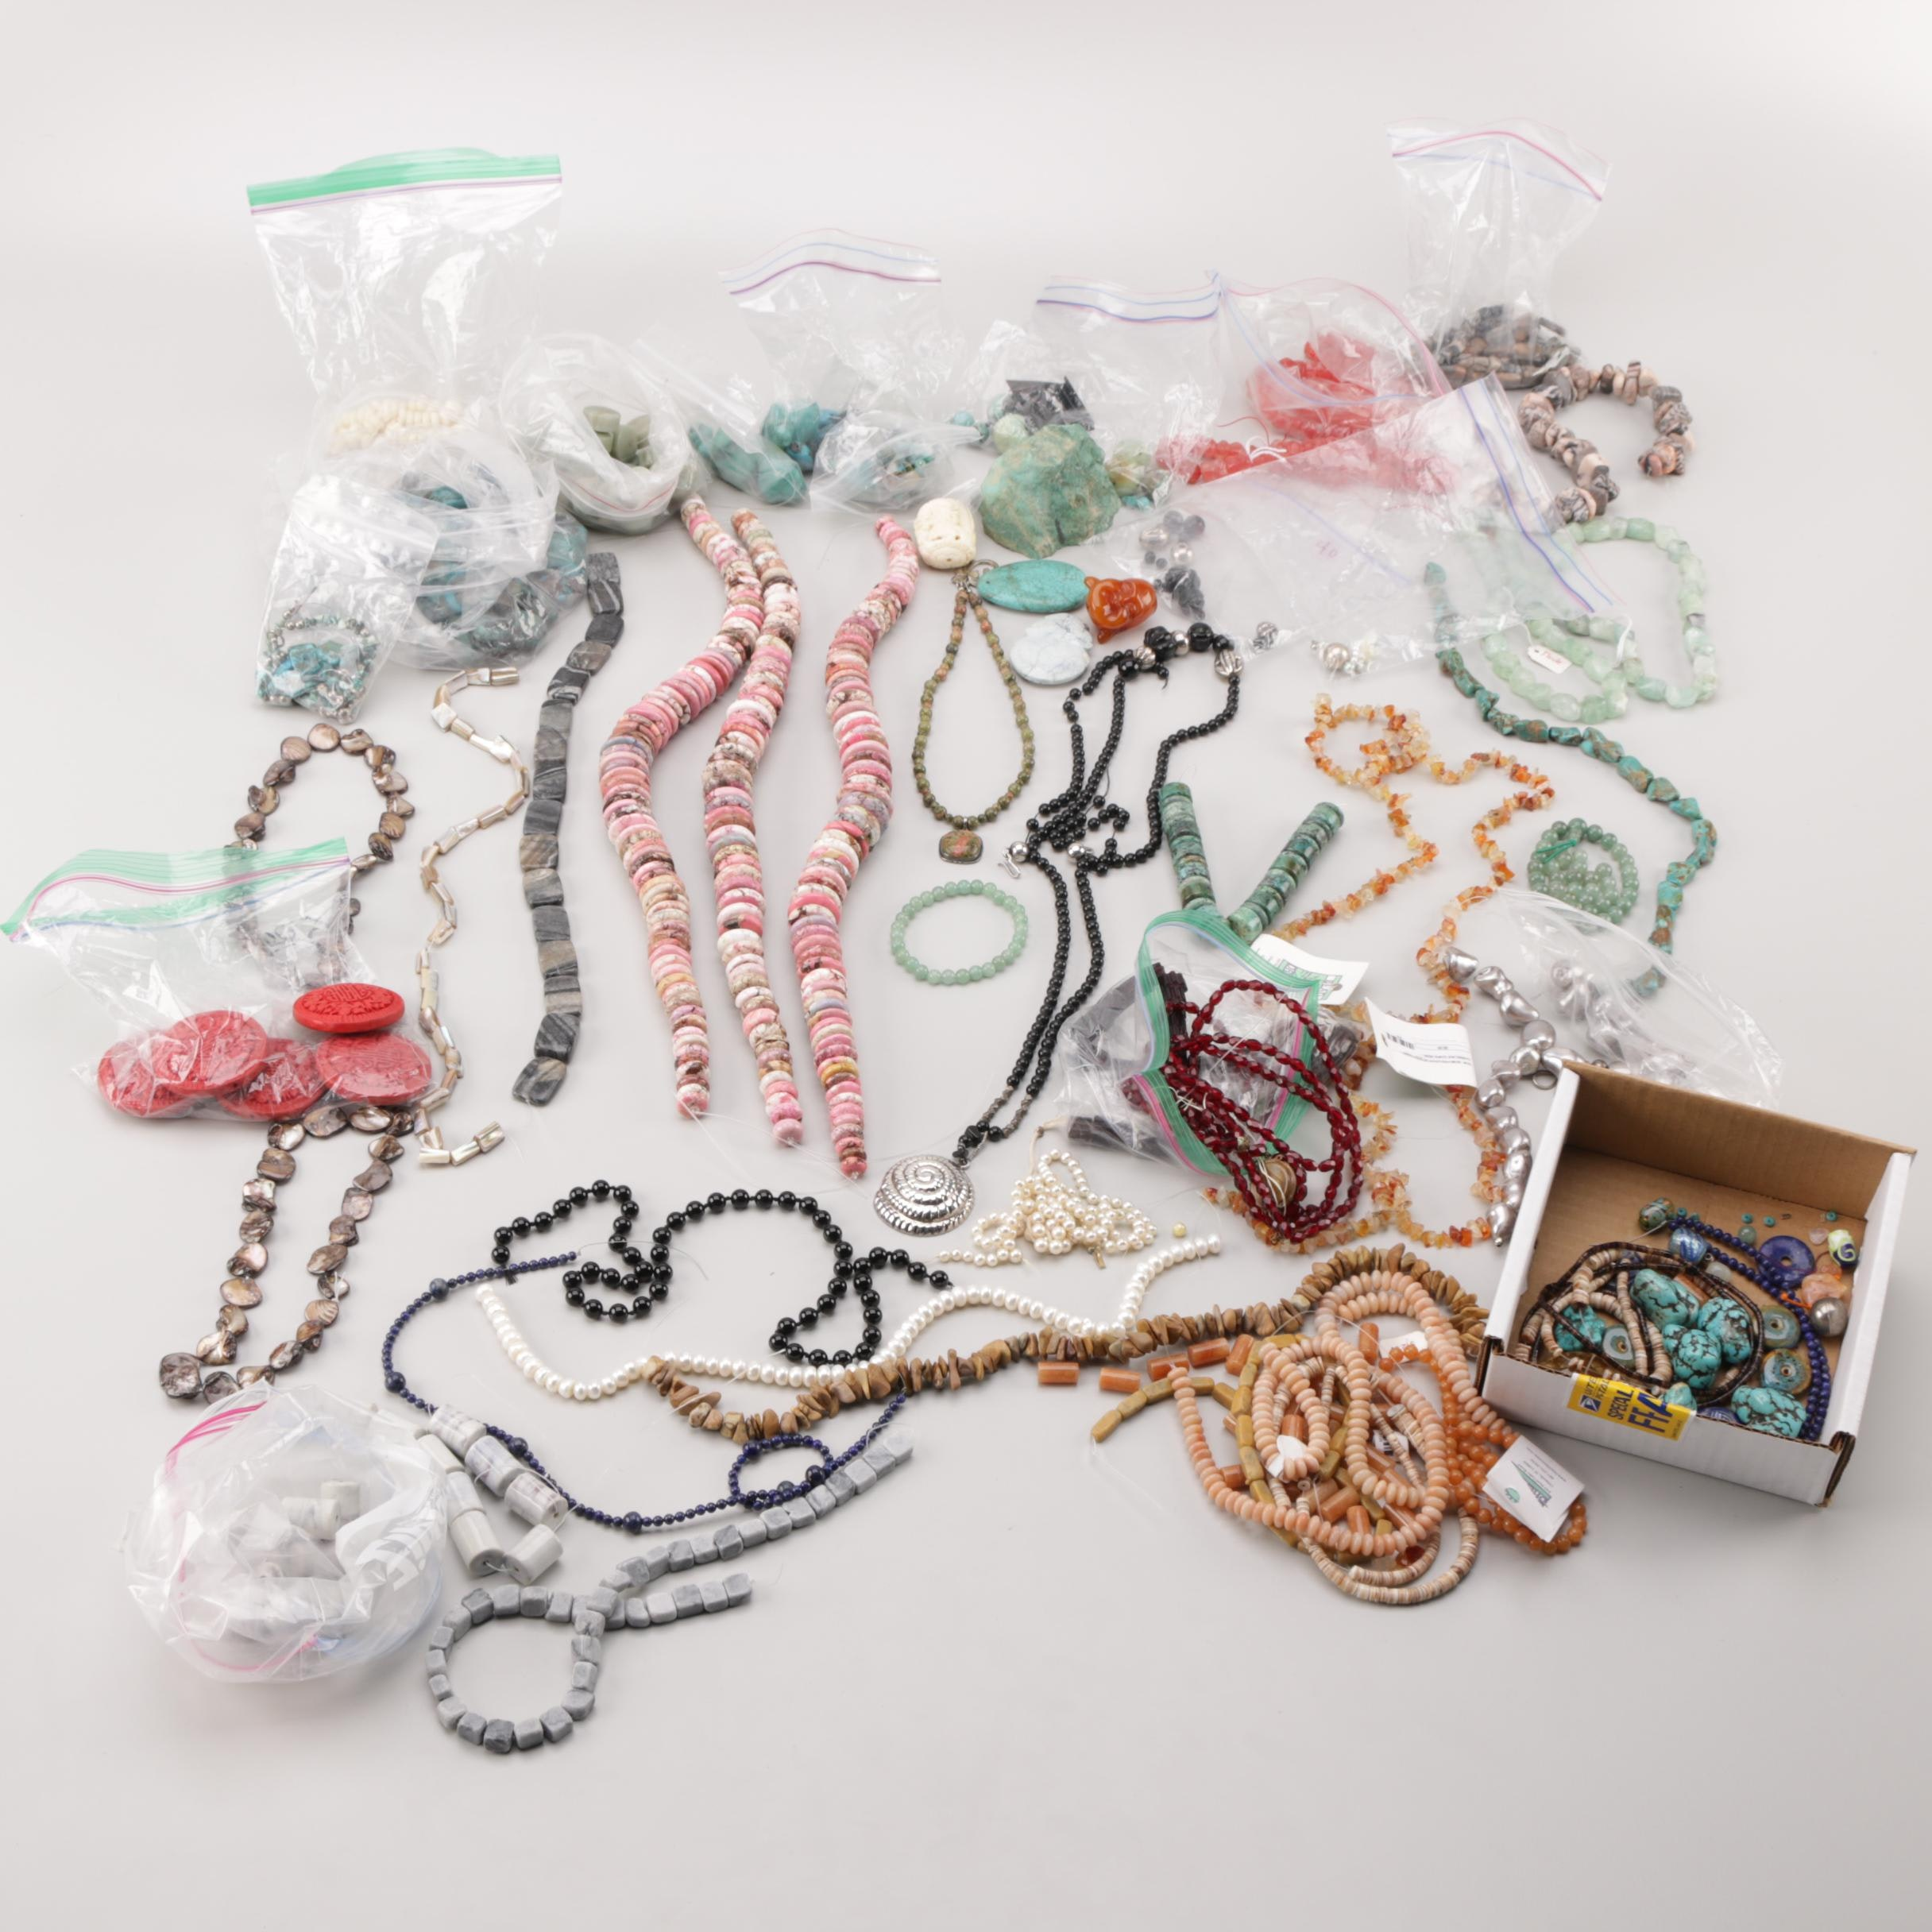 Assortment of Silver Tone and Gemstone Beads Including Turquoise